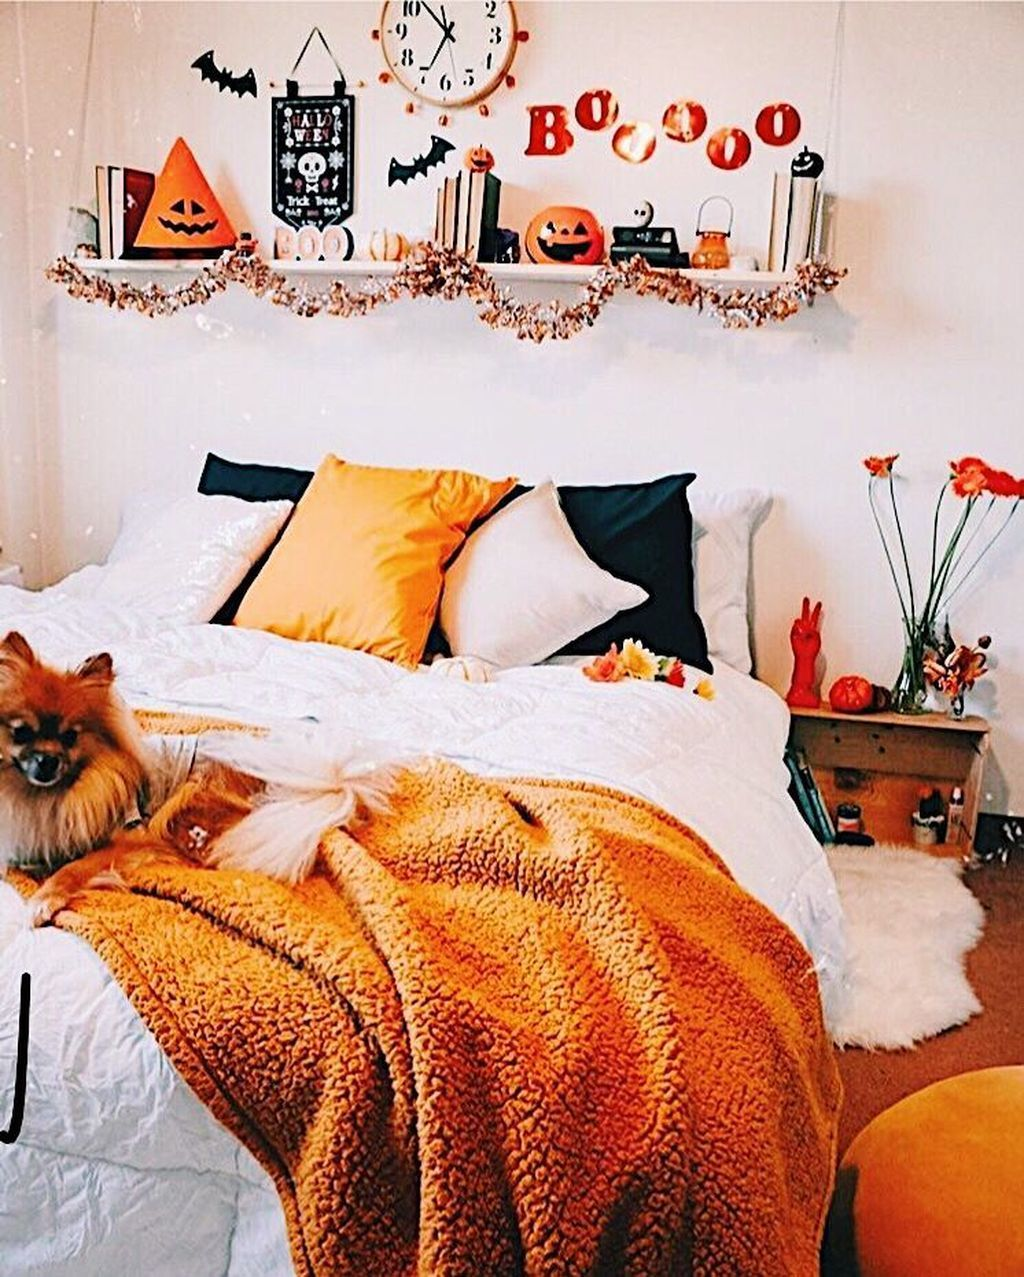 16 Lovely Fall Bedroom Decor Ideas That Will Popular This Year